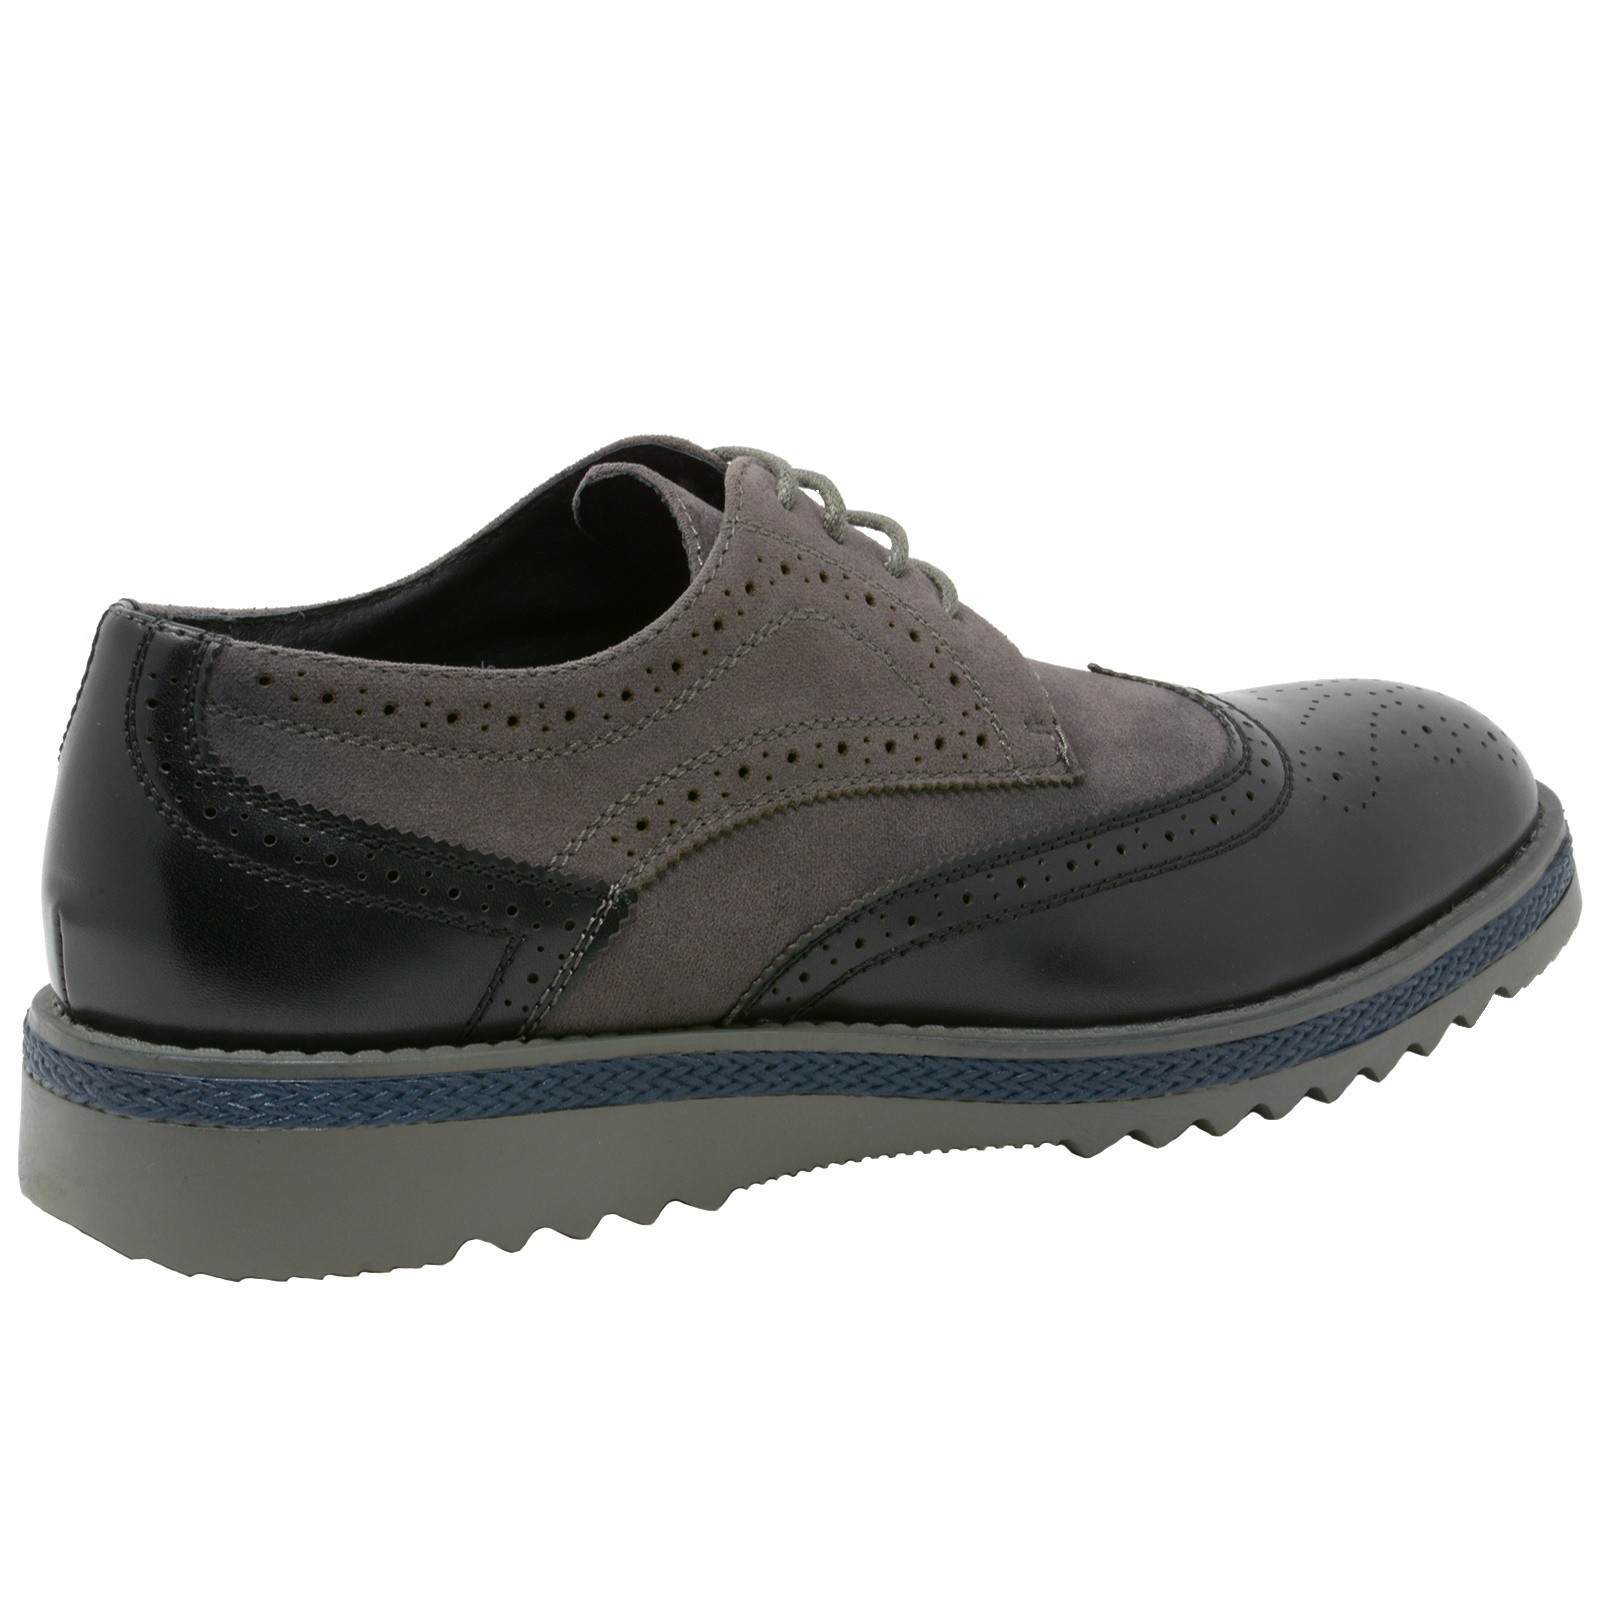 Alpine-Swiss-Alec-Mens-Wingtip-Shoes-1-5-Ripple-Sole-Leather-Insole-amp-Lining thumbnail 22